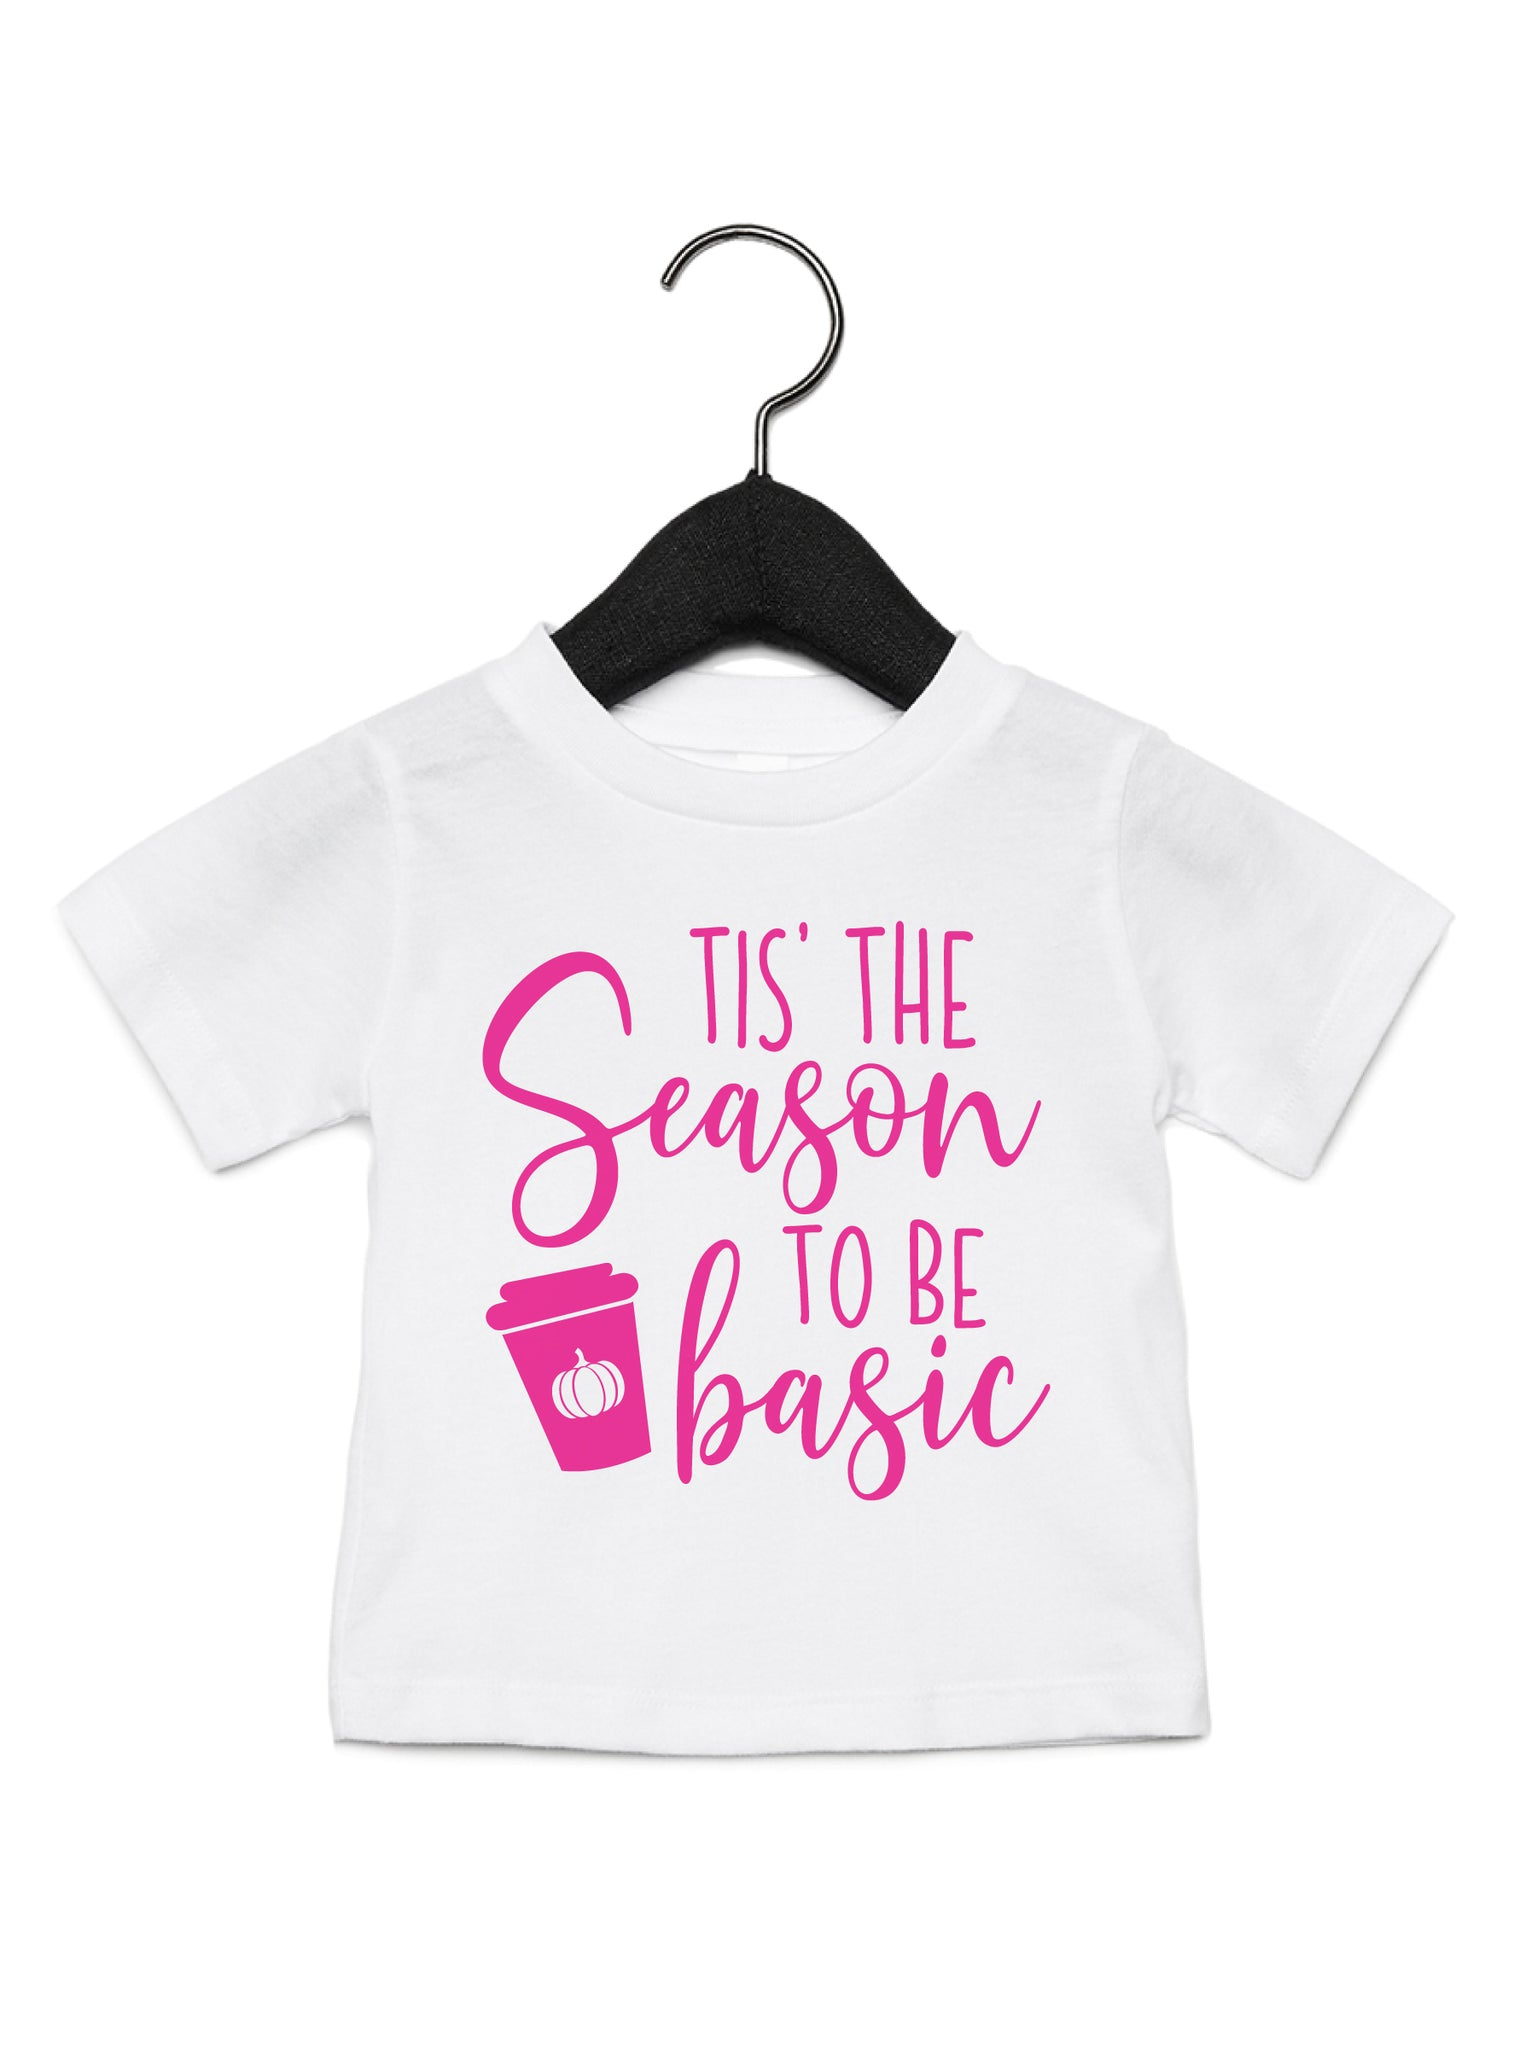 Basic Season Tshirt